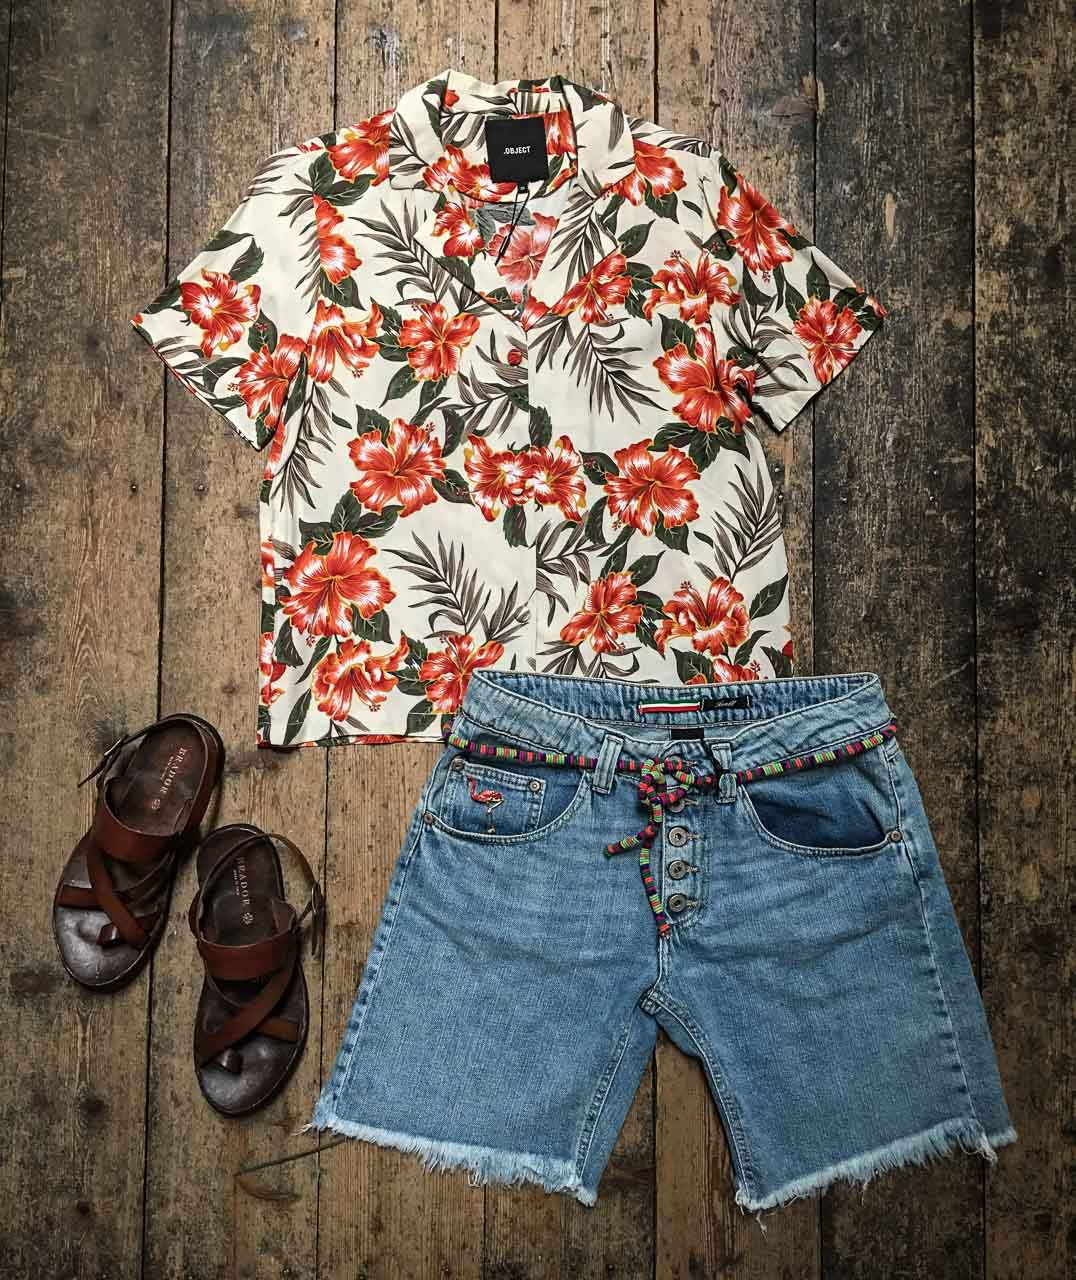 Summersale-Outfit-VIVA